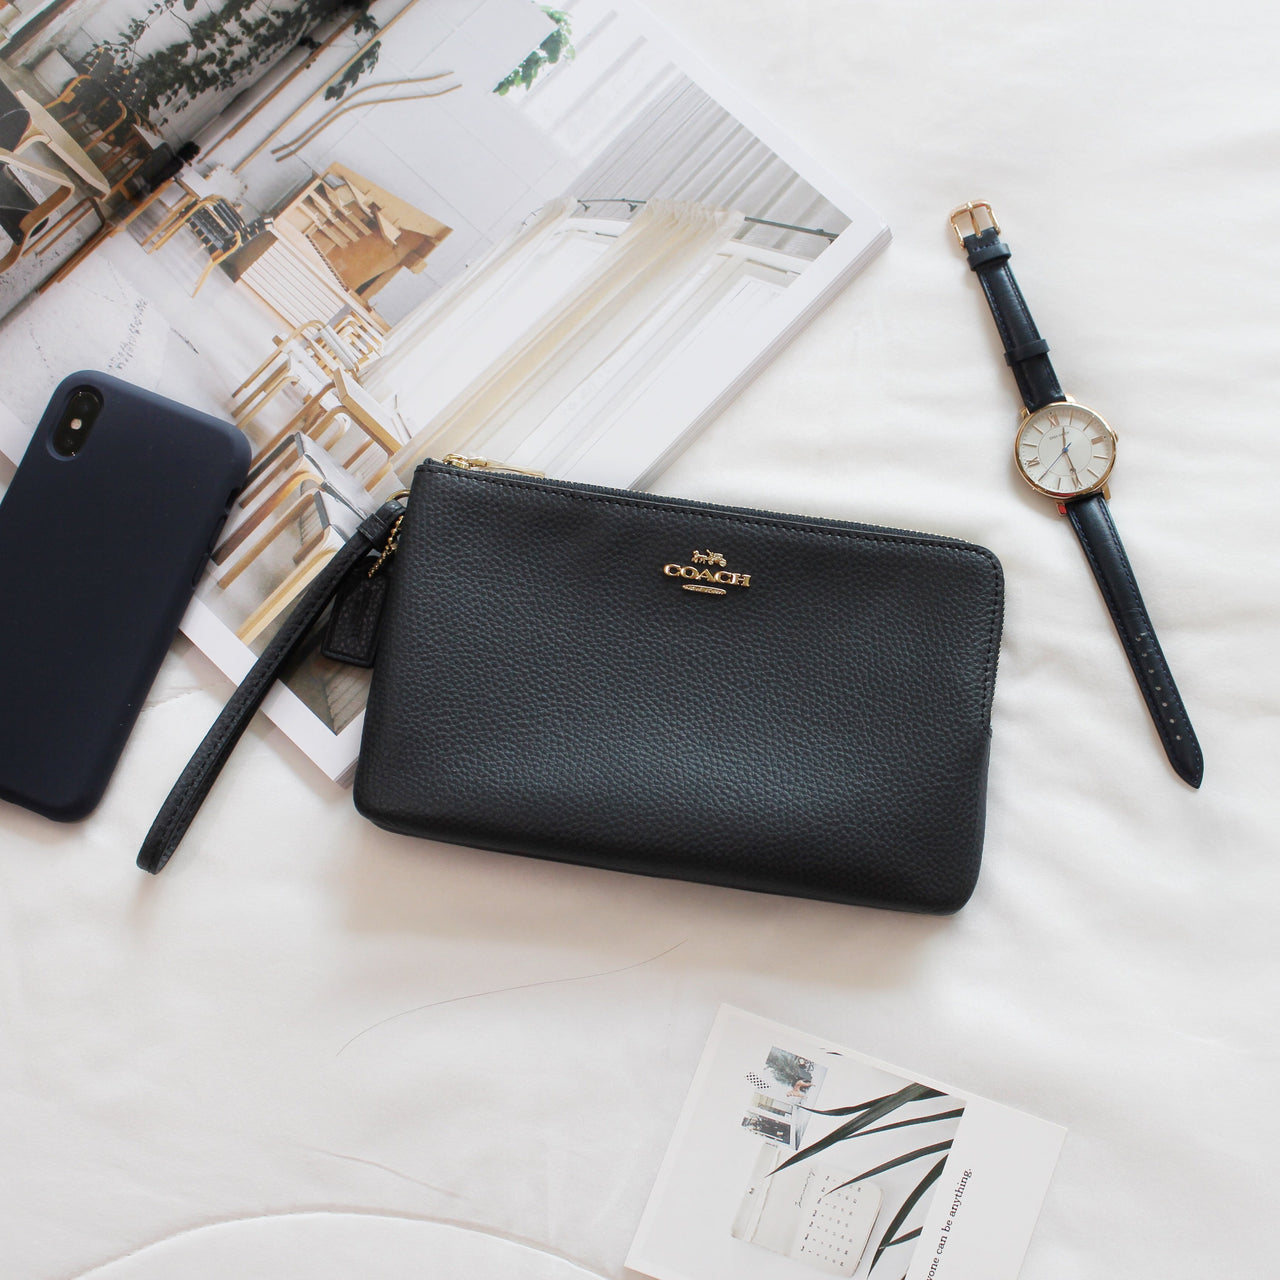 COACH DOUBLE ZIP WALLET IN POLISHED PEBBLE LEATHER - LovelyMadness Clothing Online Fashion Malaysia